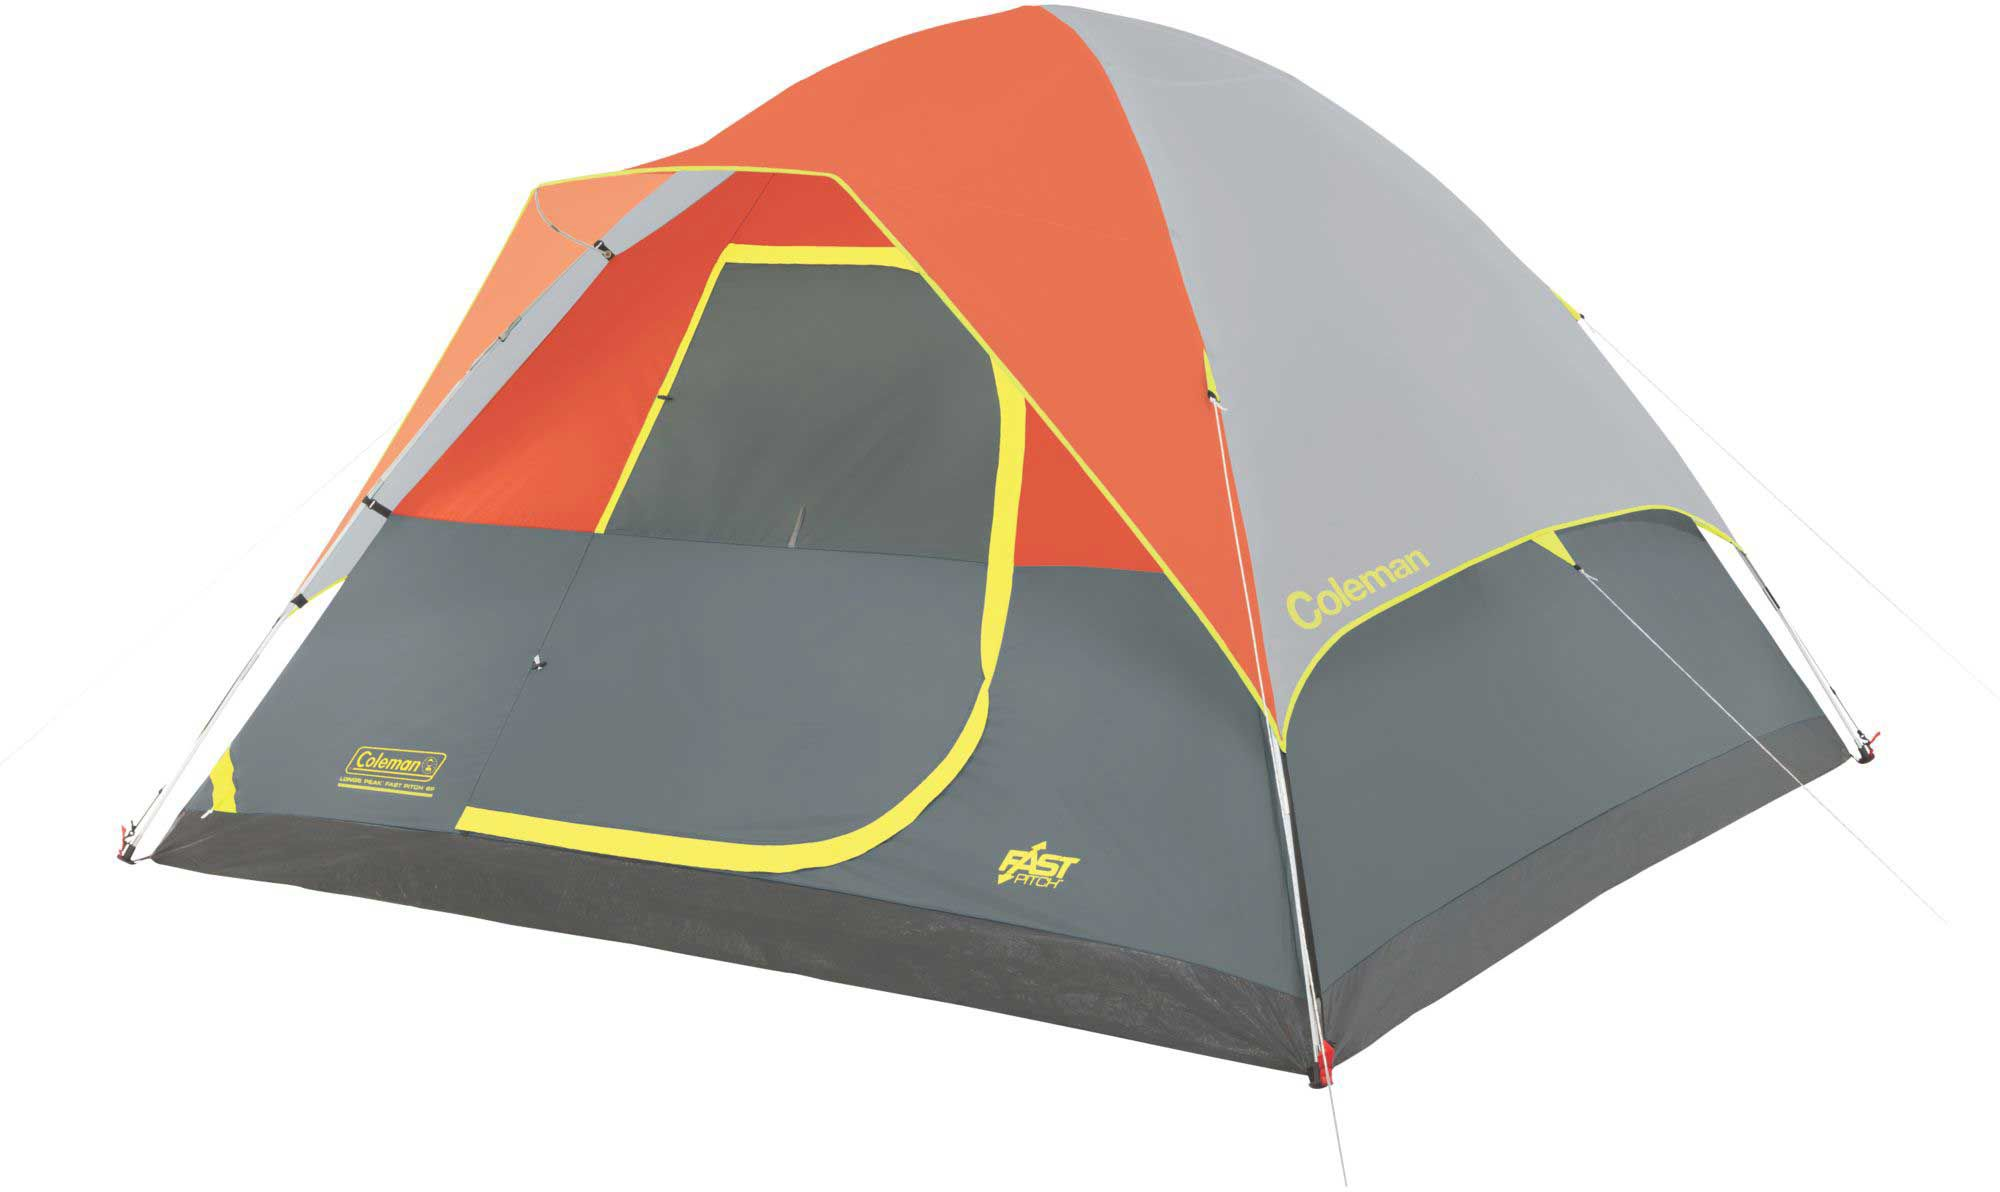 noImageFound ???  sc 1 st  DICKu0027S Sporting Goods & Coleman River Gorge Fast Pitch 4 Person Tent | DICKu0027S Sporting Goods